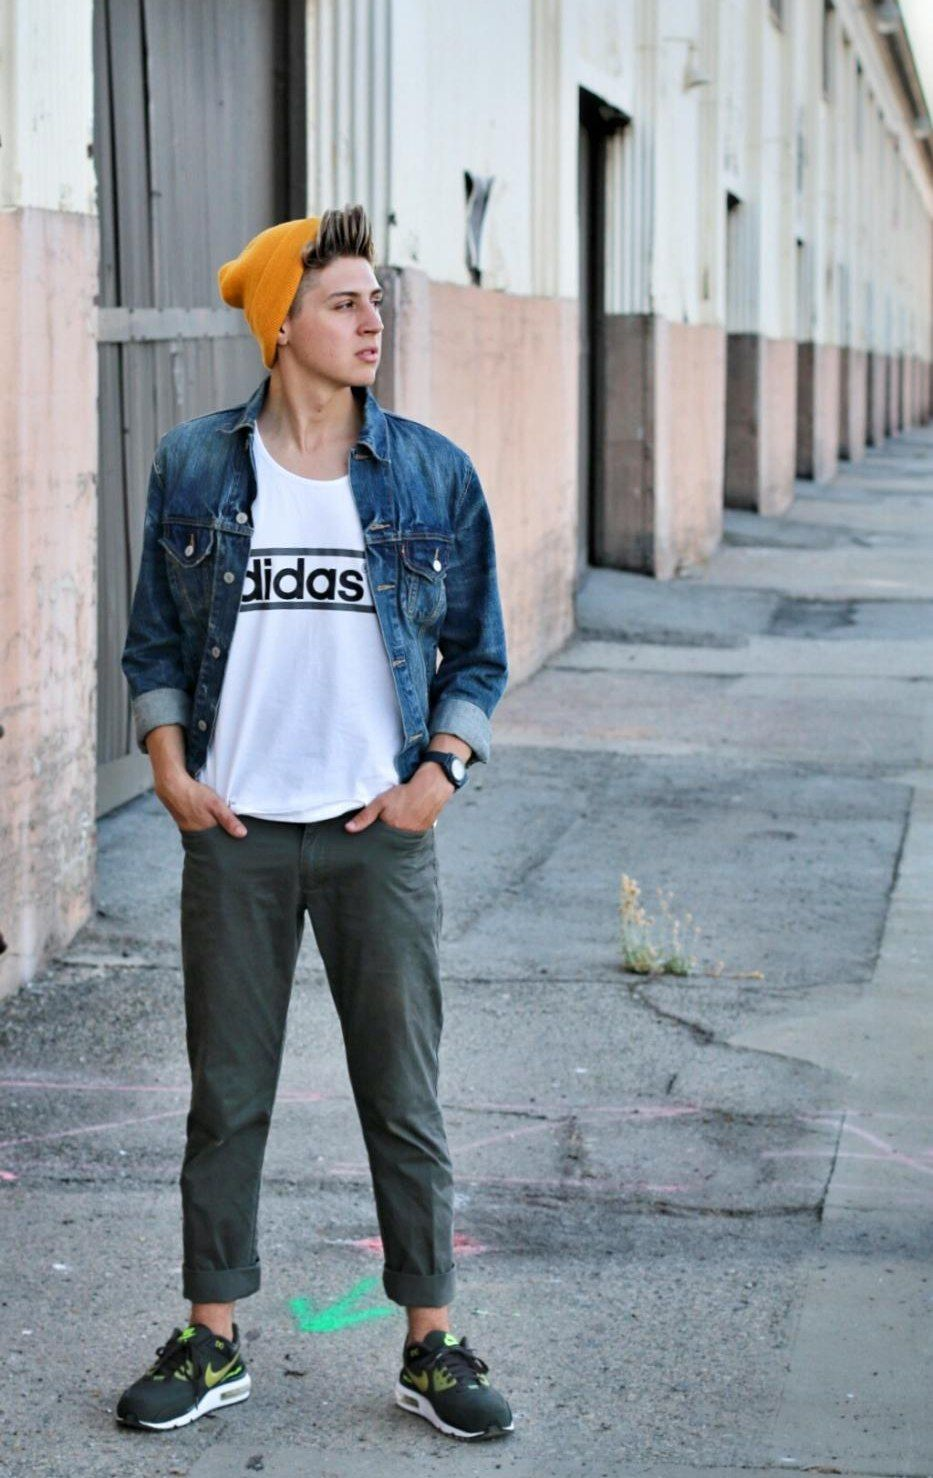 Discover more of jgrajeda's #SKoutfits on his Stylekick showcase page! || http://www.stylekick.com